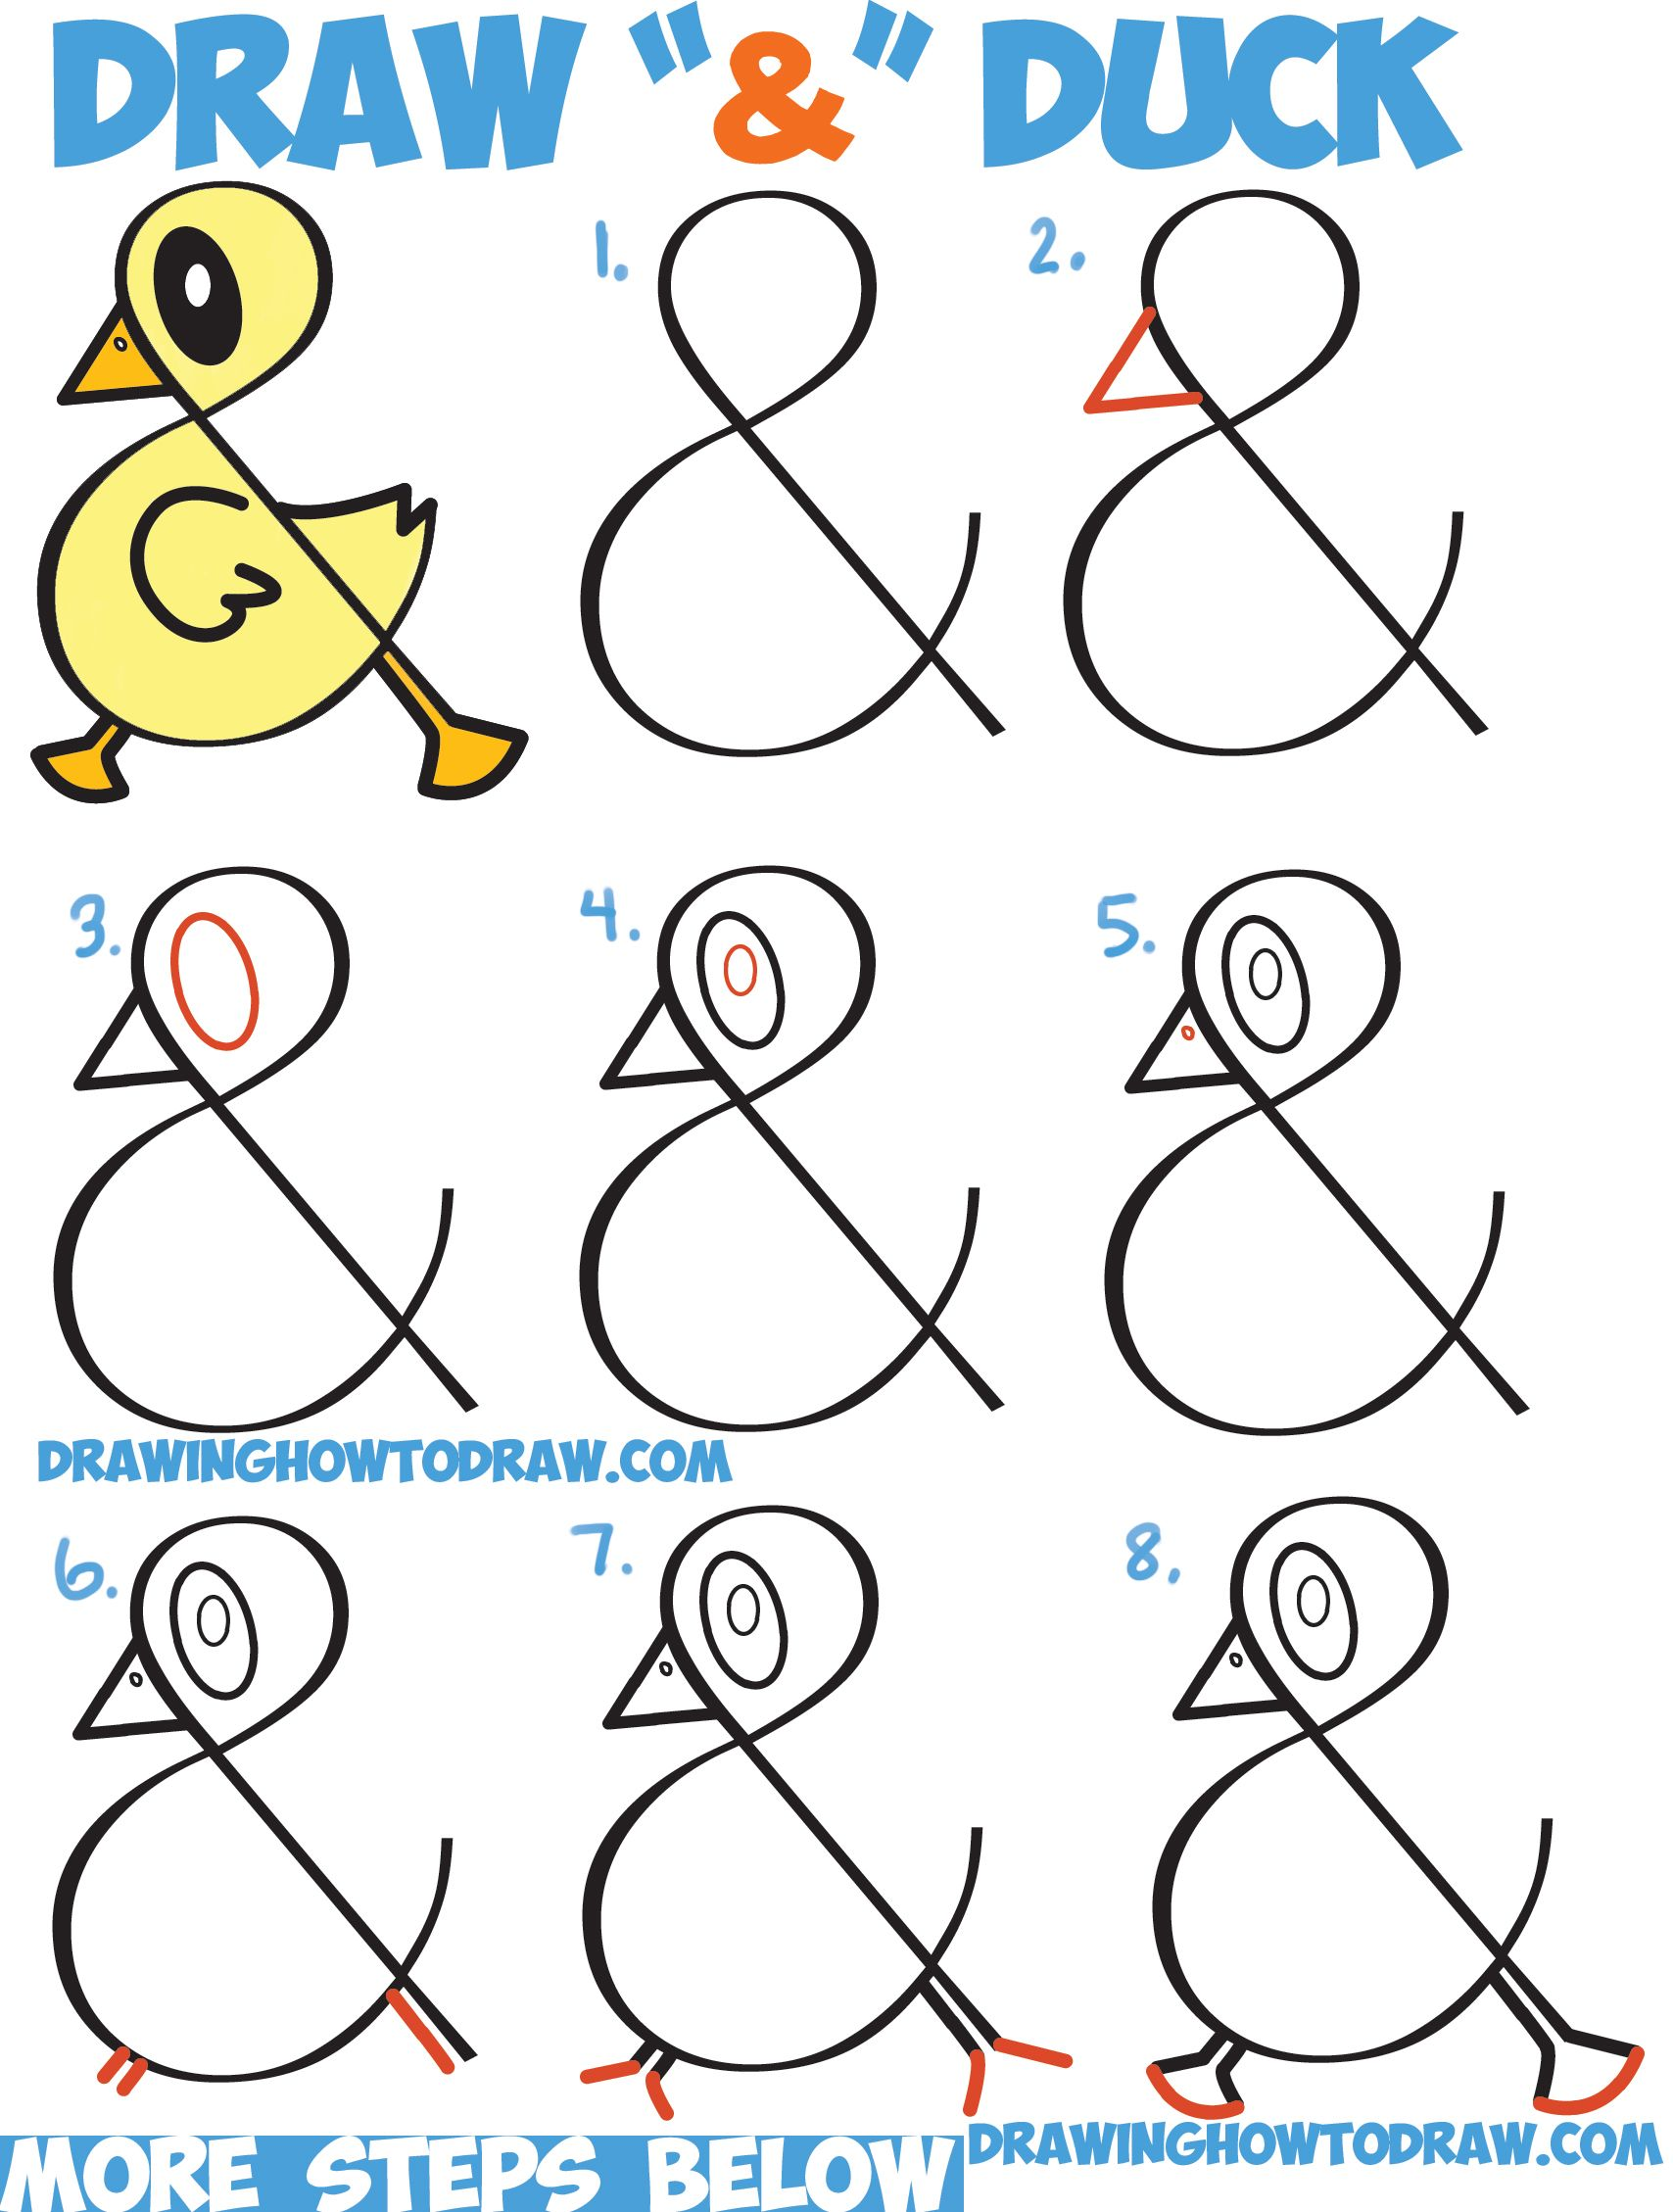 How to draw a cute cartoon duck from ampersand symbol for How to draw cute cartoon things